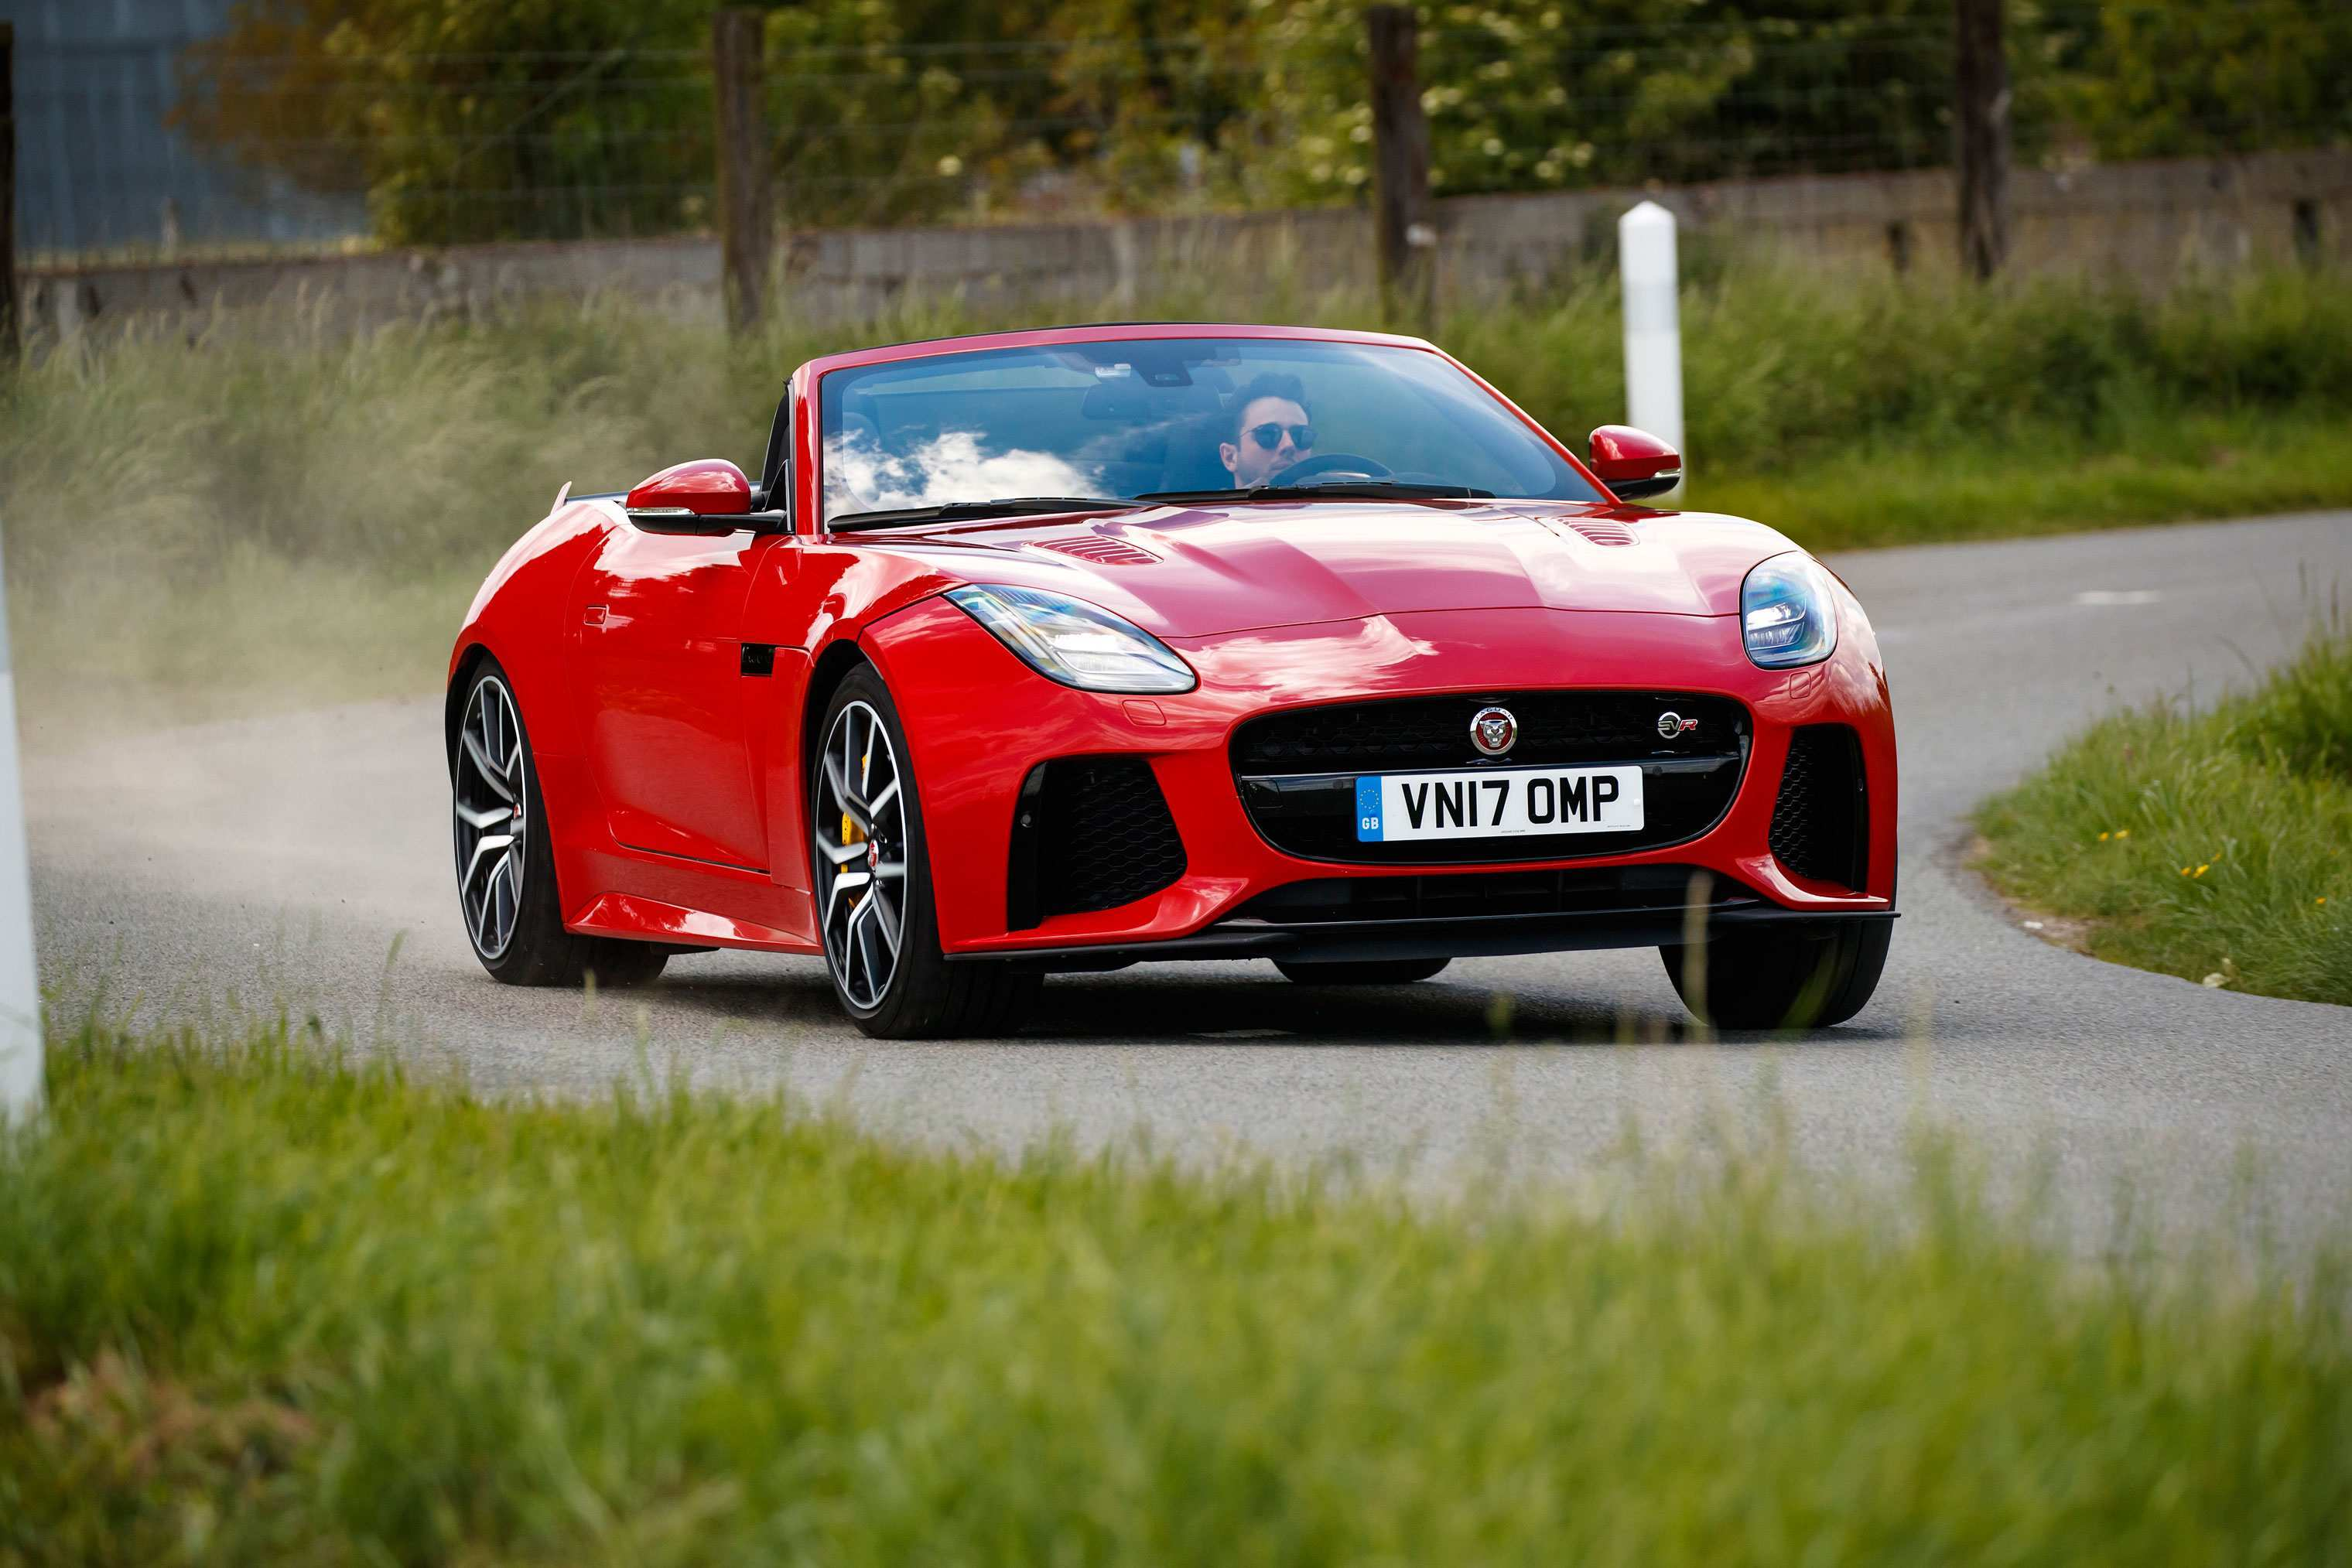 26 All New 2019 Jaguar F Type Convertible Ratings for 2019 Jaguar F Type Convertible